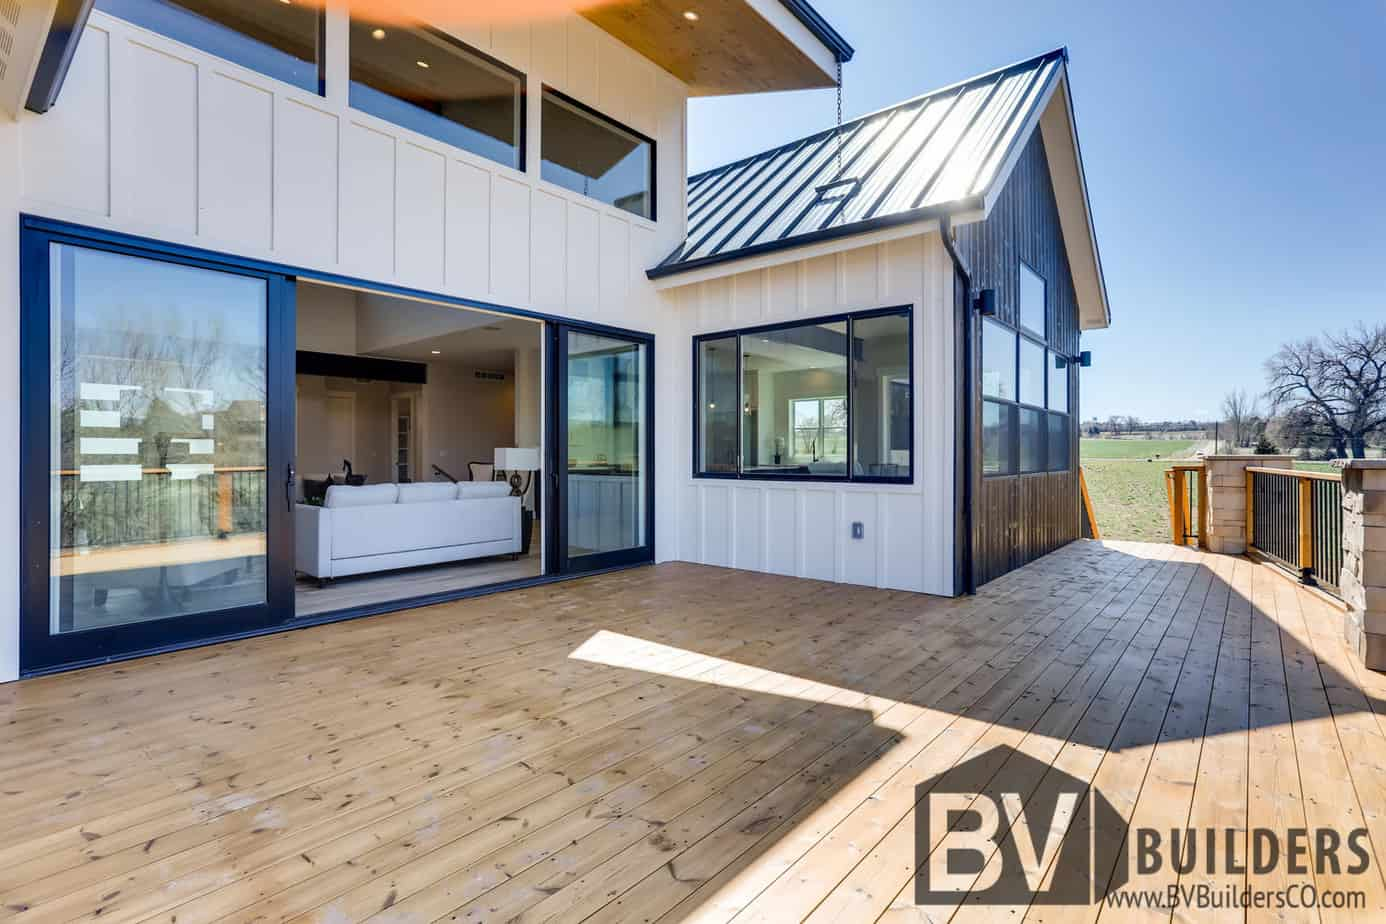 Modern farmhouse with Thermory wood deck and large sliding glass door